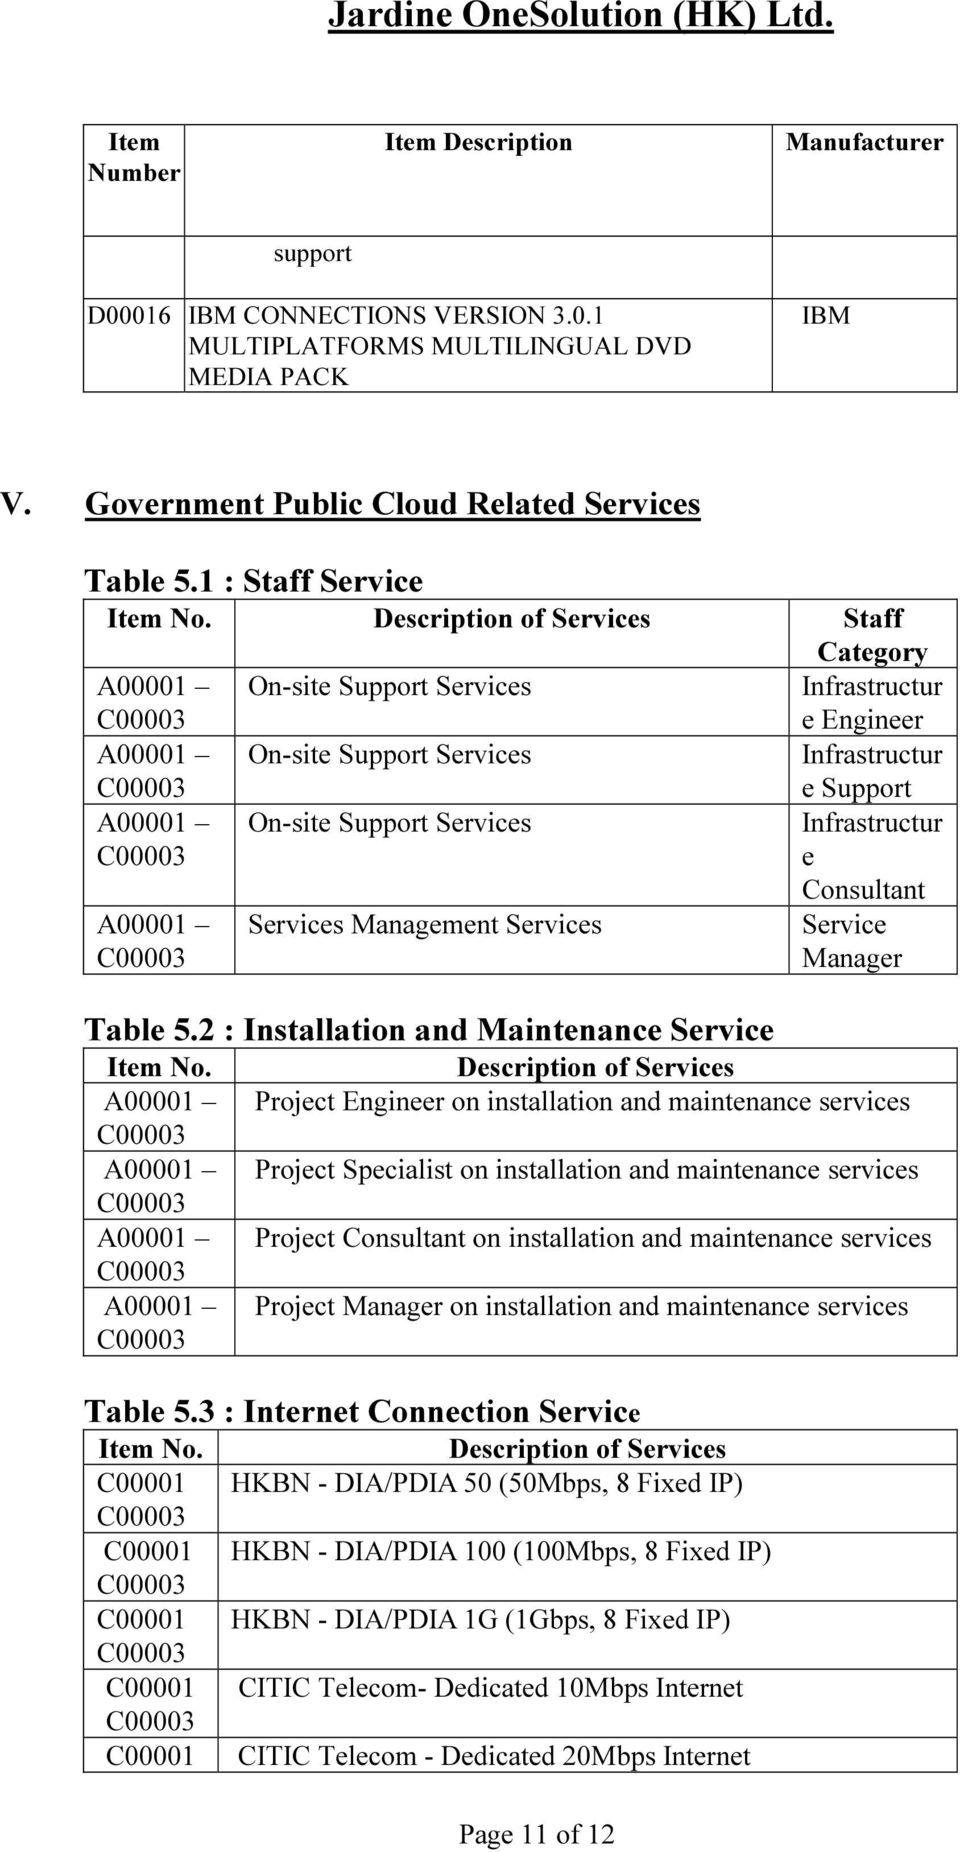 Page 11 of 12 Category Infrastructur e Engineer Infrastructur e Support Infrastructur e Consultant Service Manager Description of Services Project Engineer on installation and maintenance services